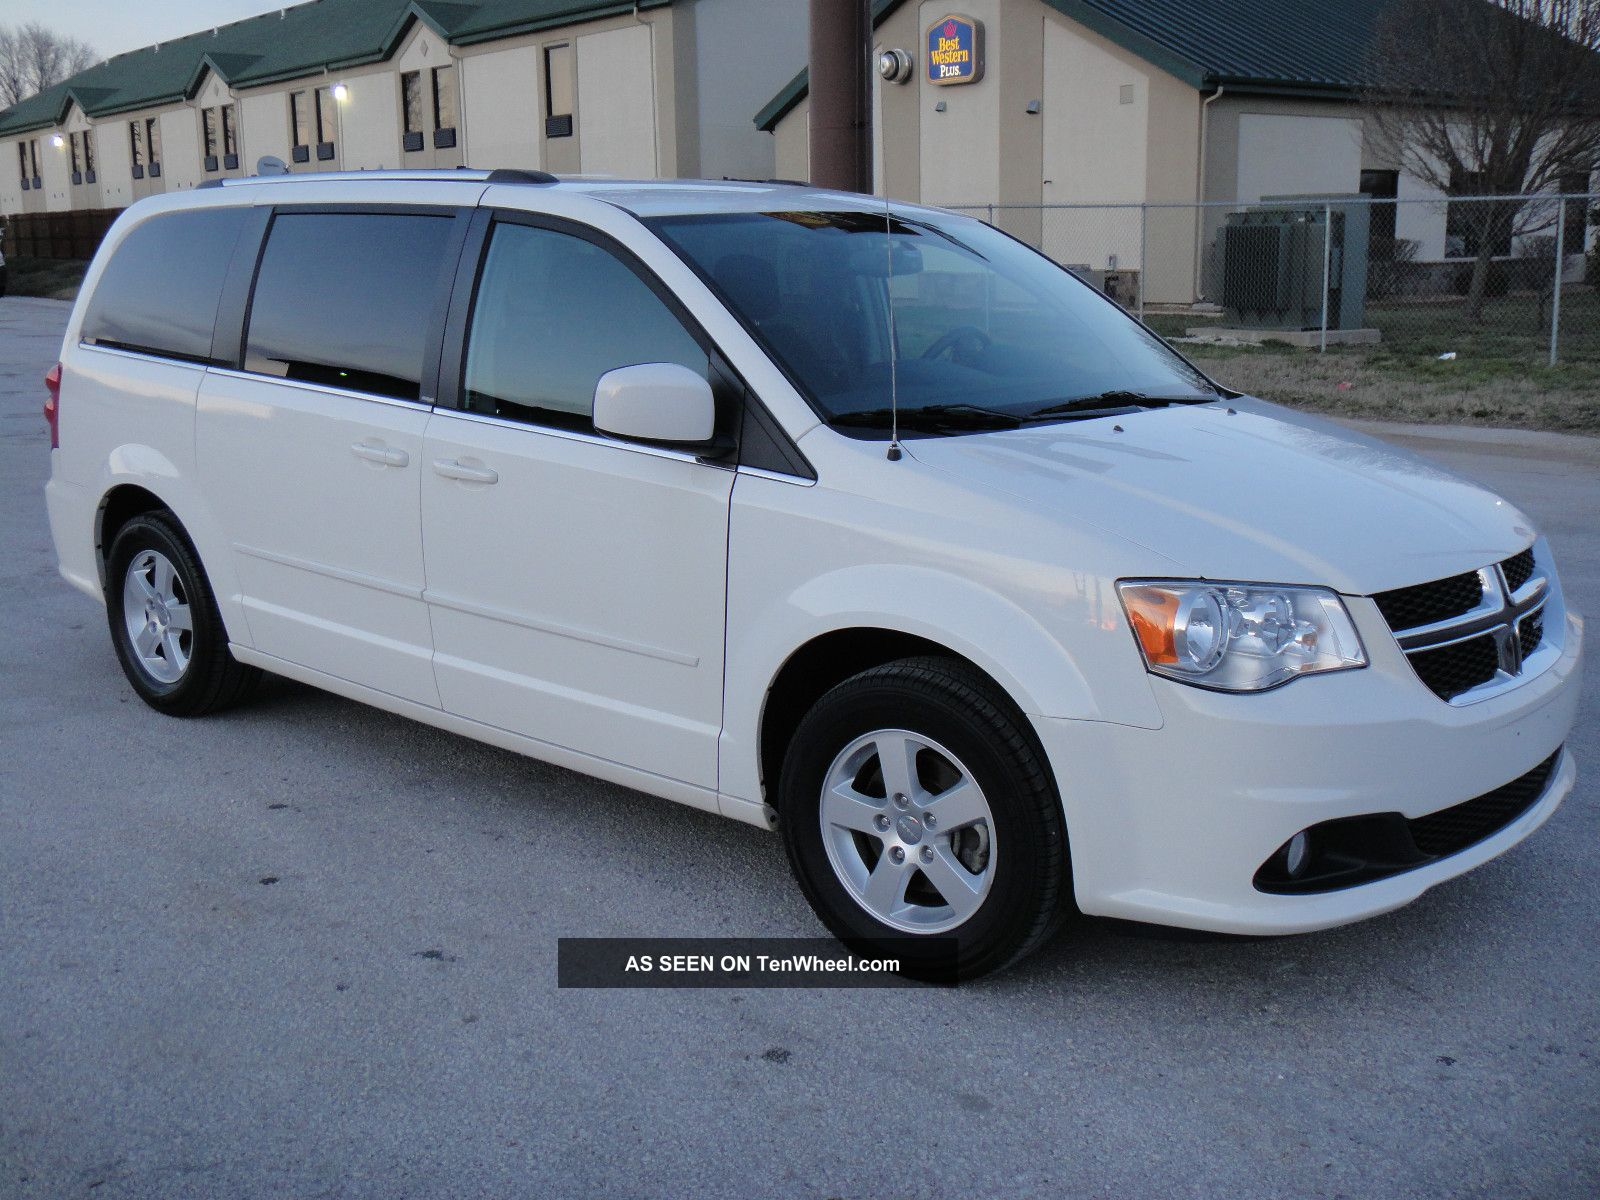 2011 Dodge Grand Caravan Crew Stow N Go Quad Seating Grand Caravan photo